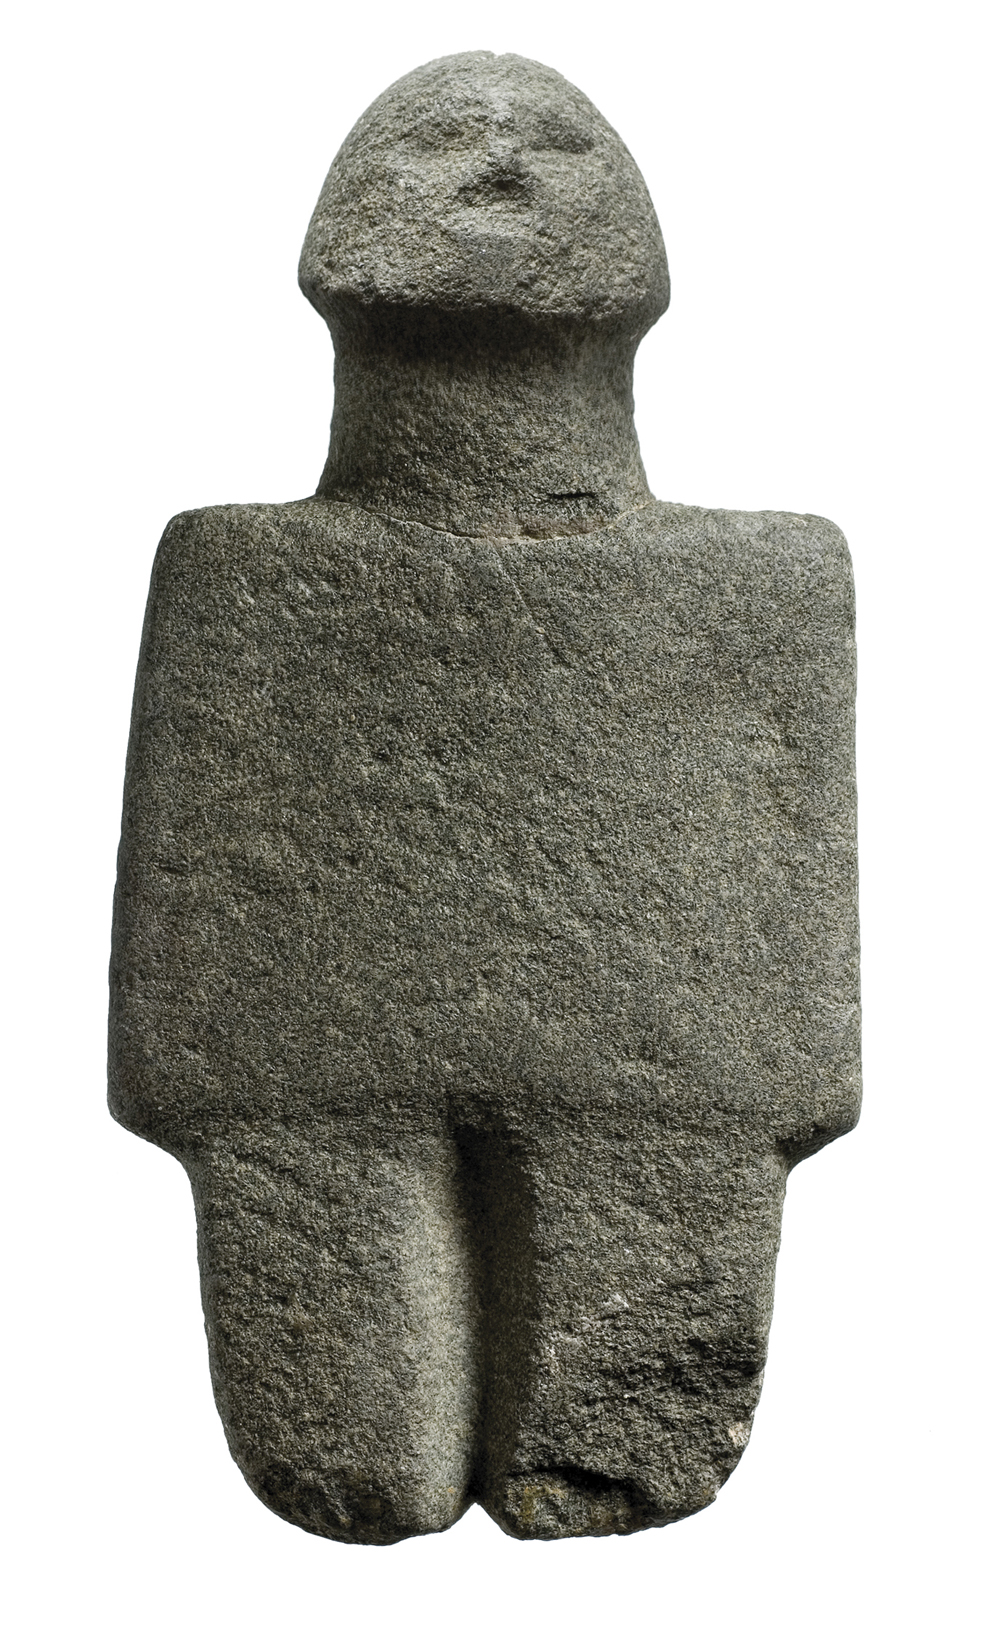 """ANCIENT CYPRUS: Cultures in Dialogue"" -Andesite anthropomorphic figurine, 7th-6th millennia BC,"